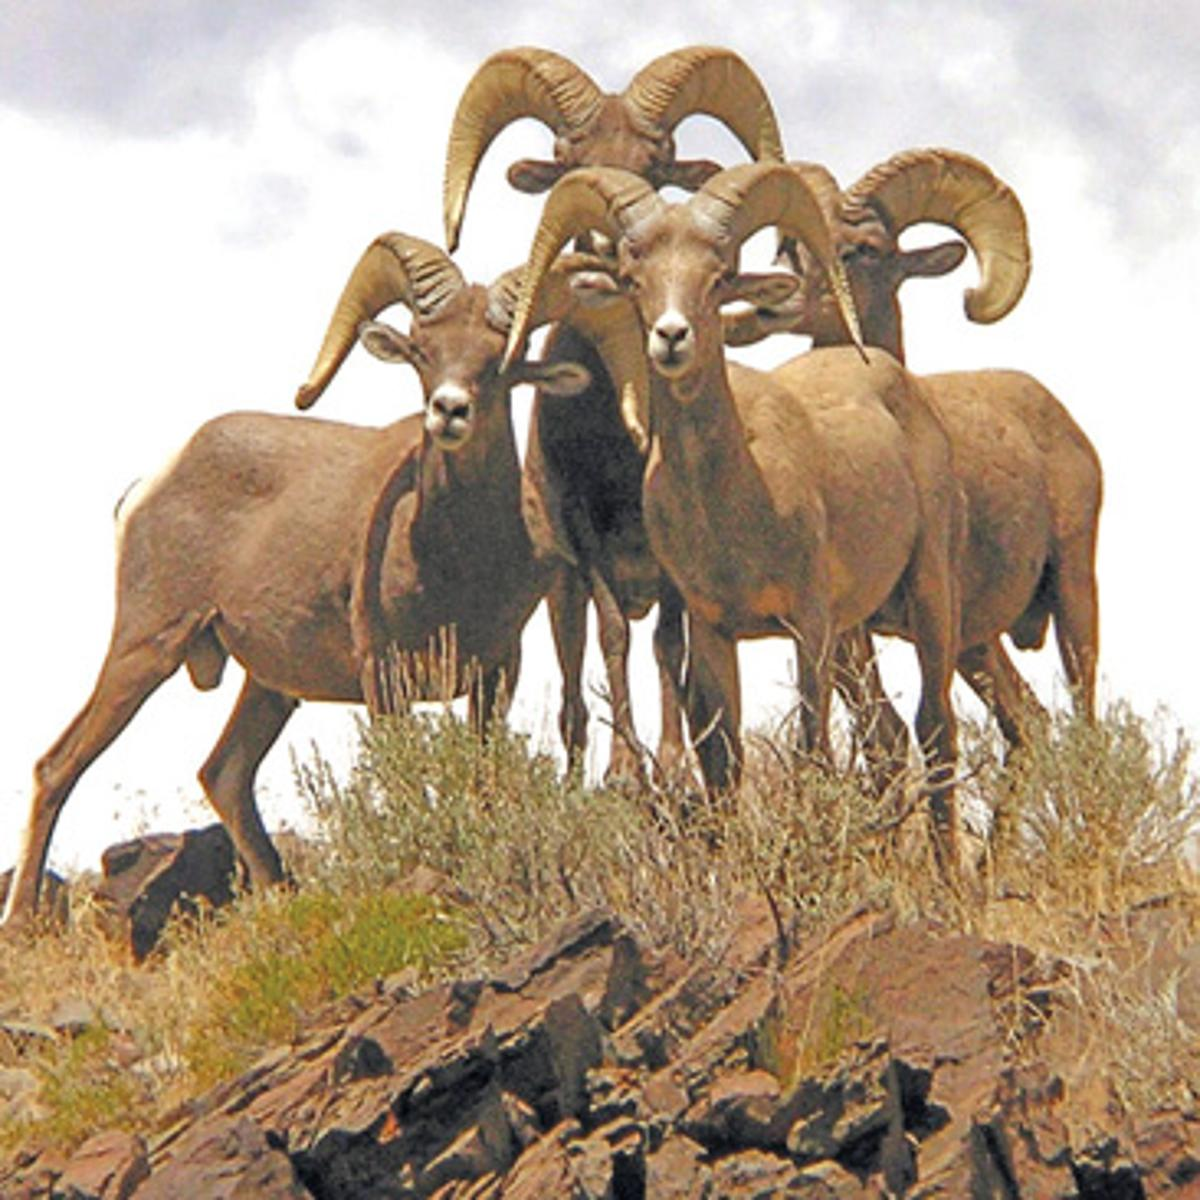 Out Back Nevada Desert Bighorn Sheep Symbol Of Rugged Life Lifestyles Elkodaily Com